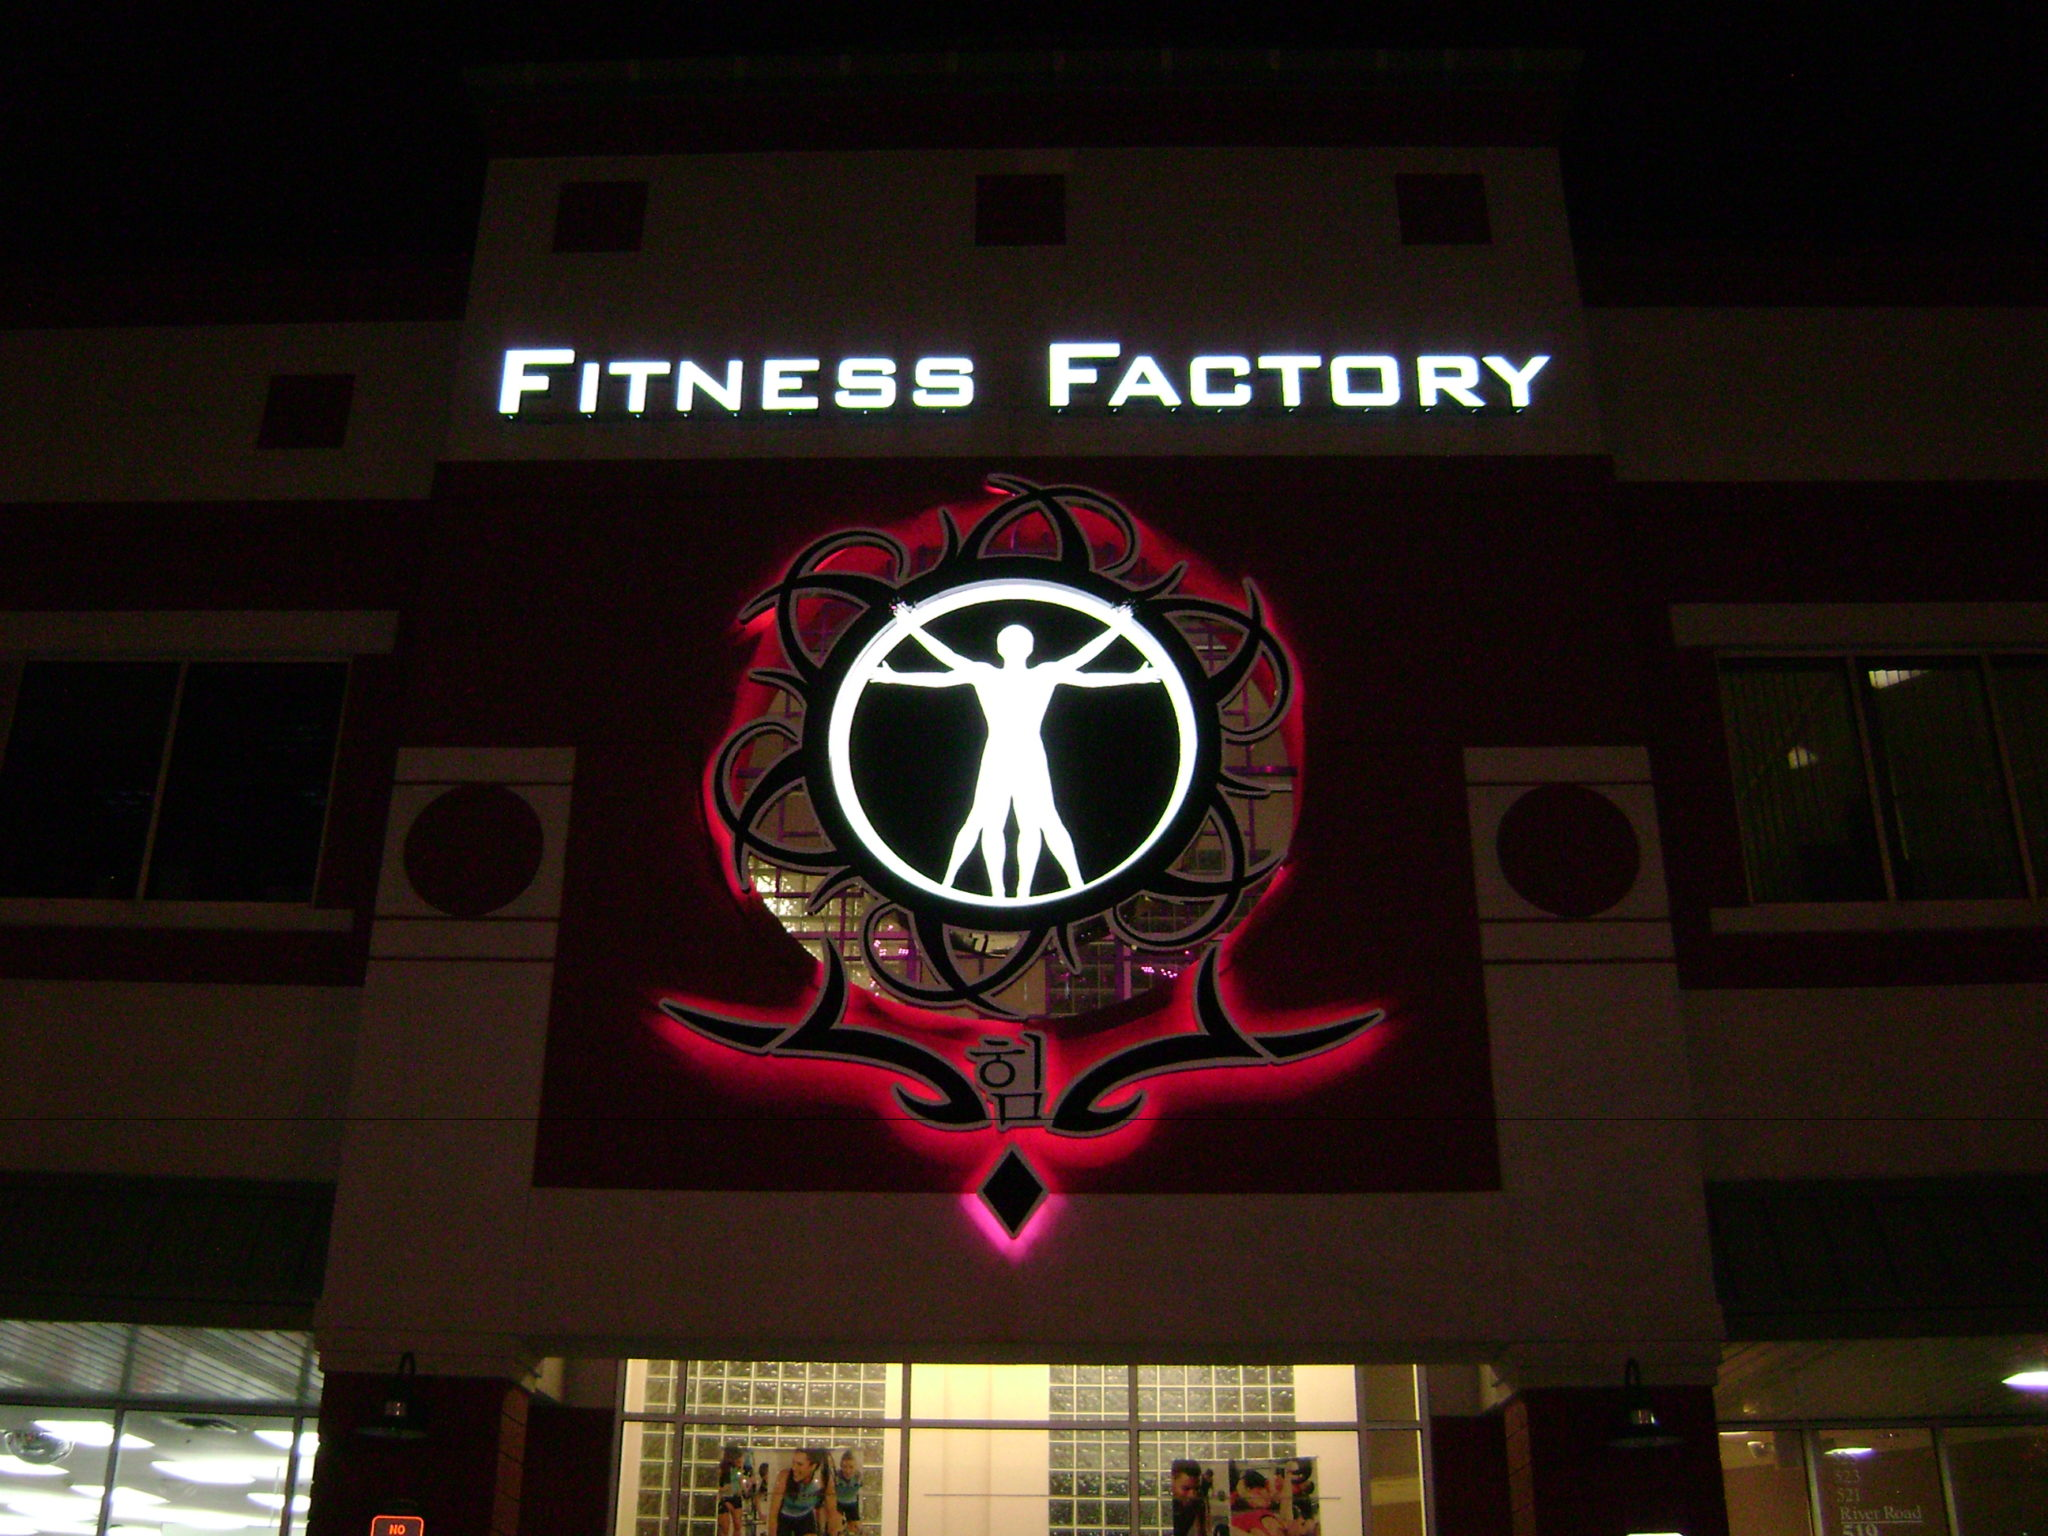 Health Gym Signs West Orange